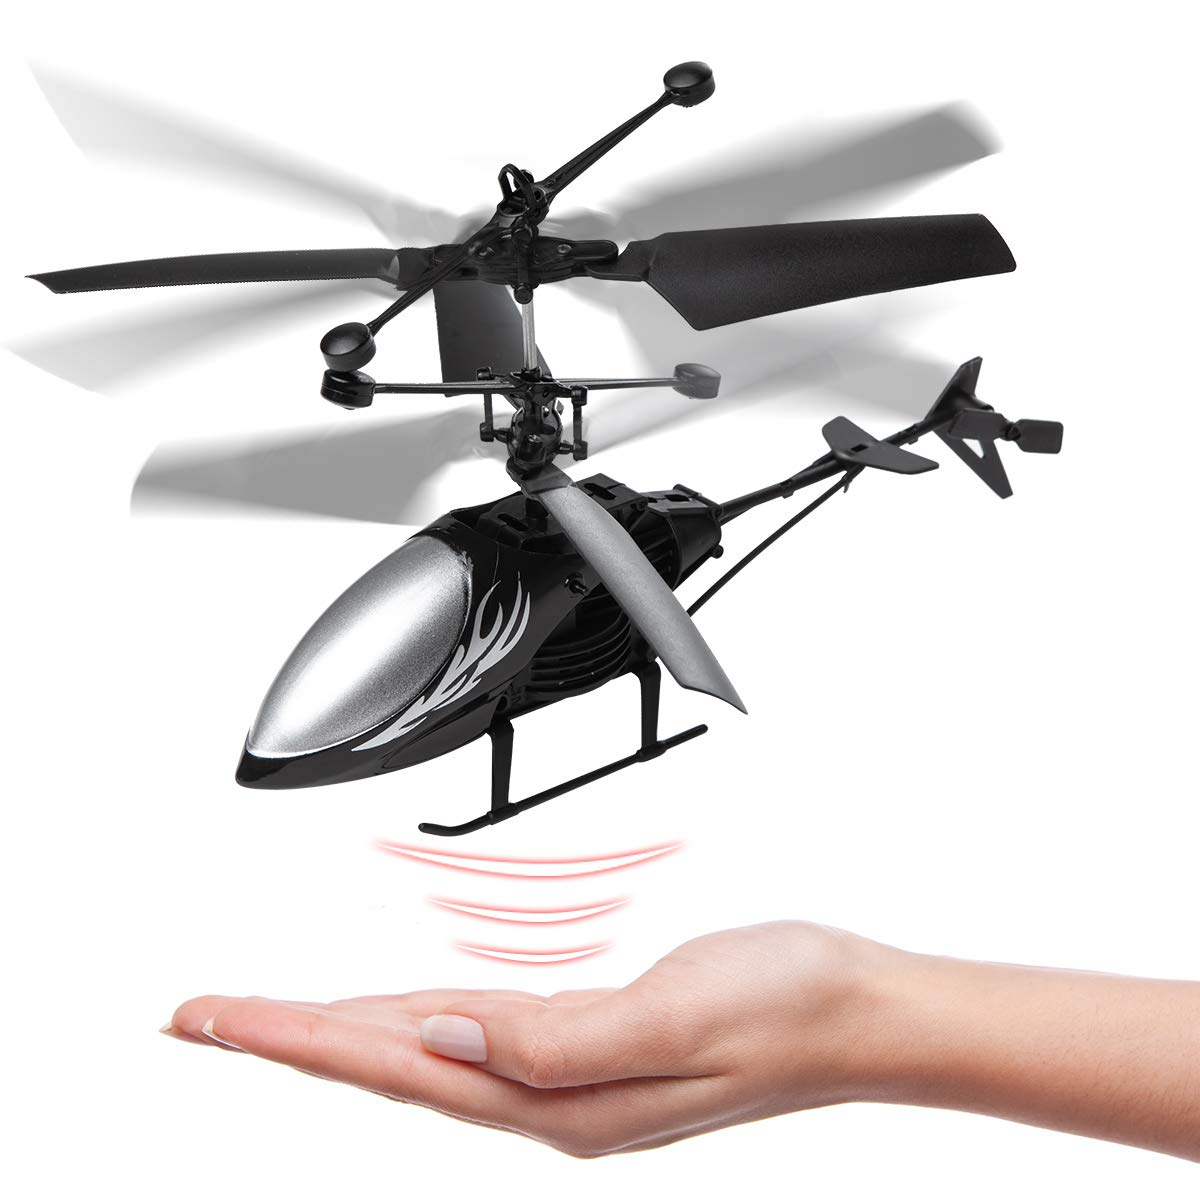 Remote Control Helicopter Flying Toys Boys Girls Indoor Outdoor Games Mini Led Rechargeable Hand Operated Drone with LED Light for Kids Black